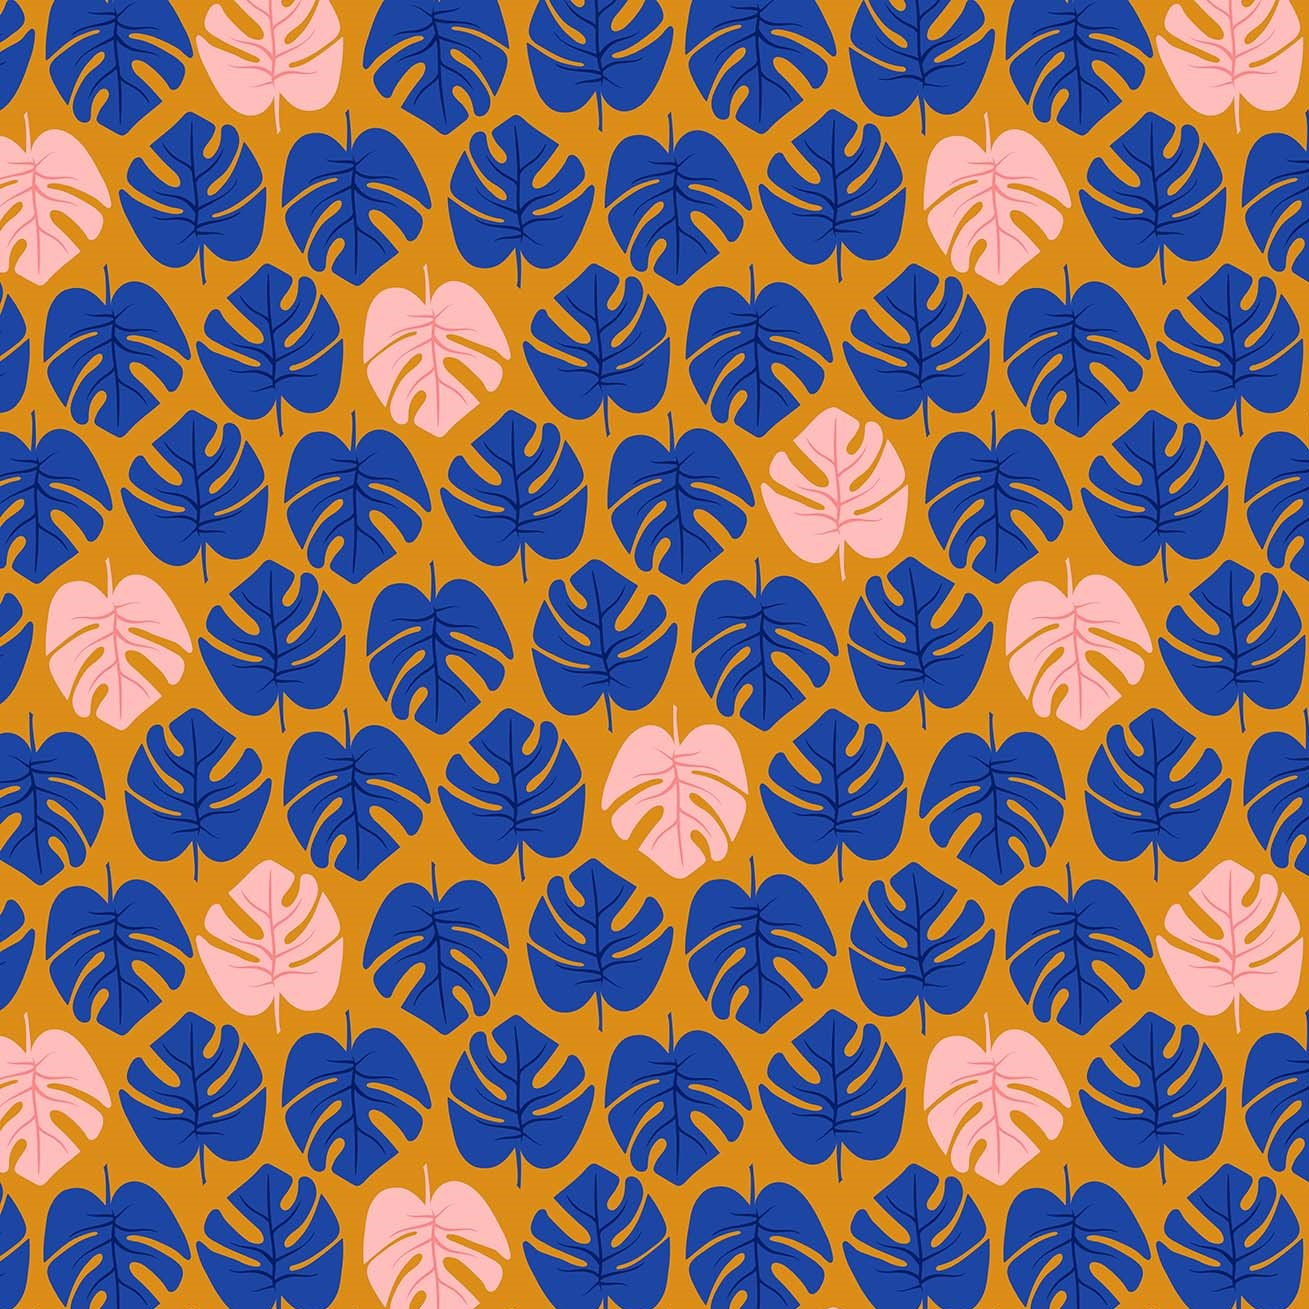 Monstera Navy from the Tropical Jammin' collection by Figo Fabrics, 100% cotton fabric